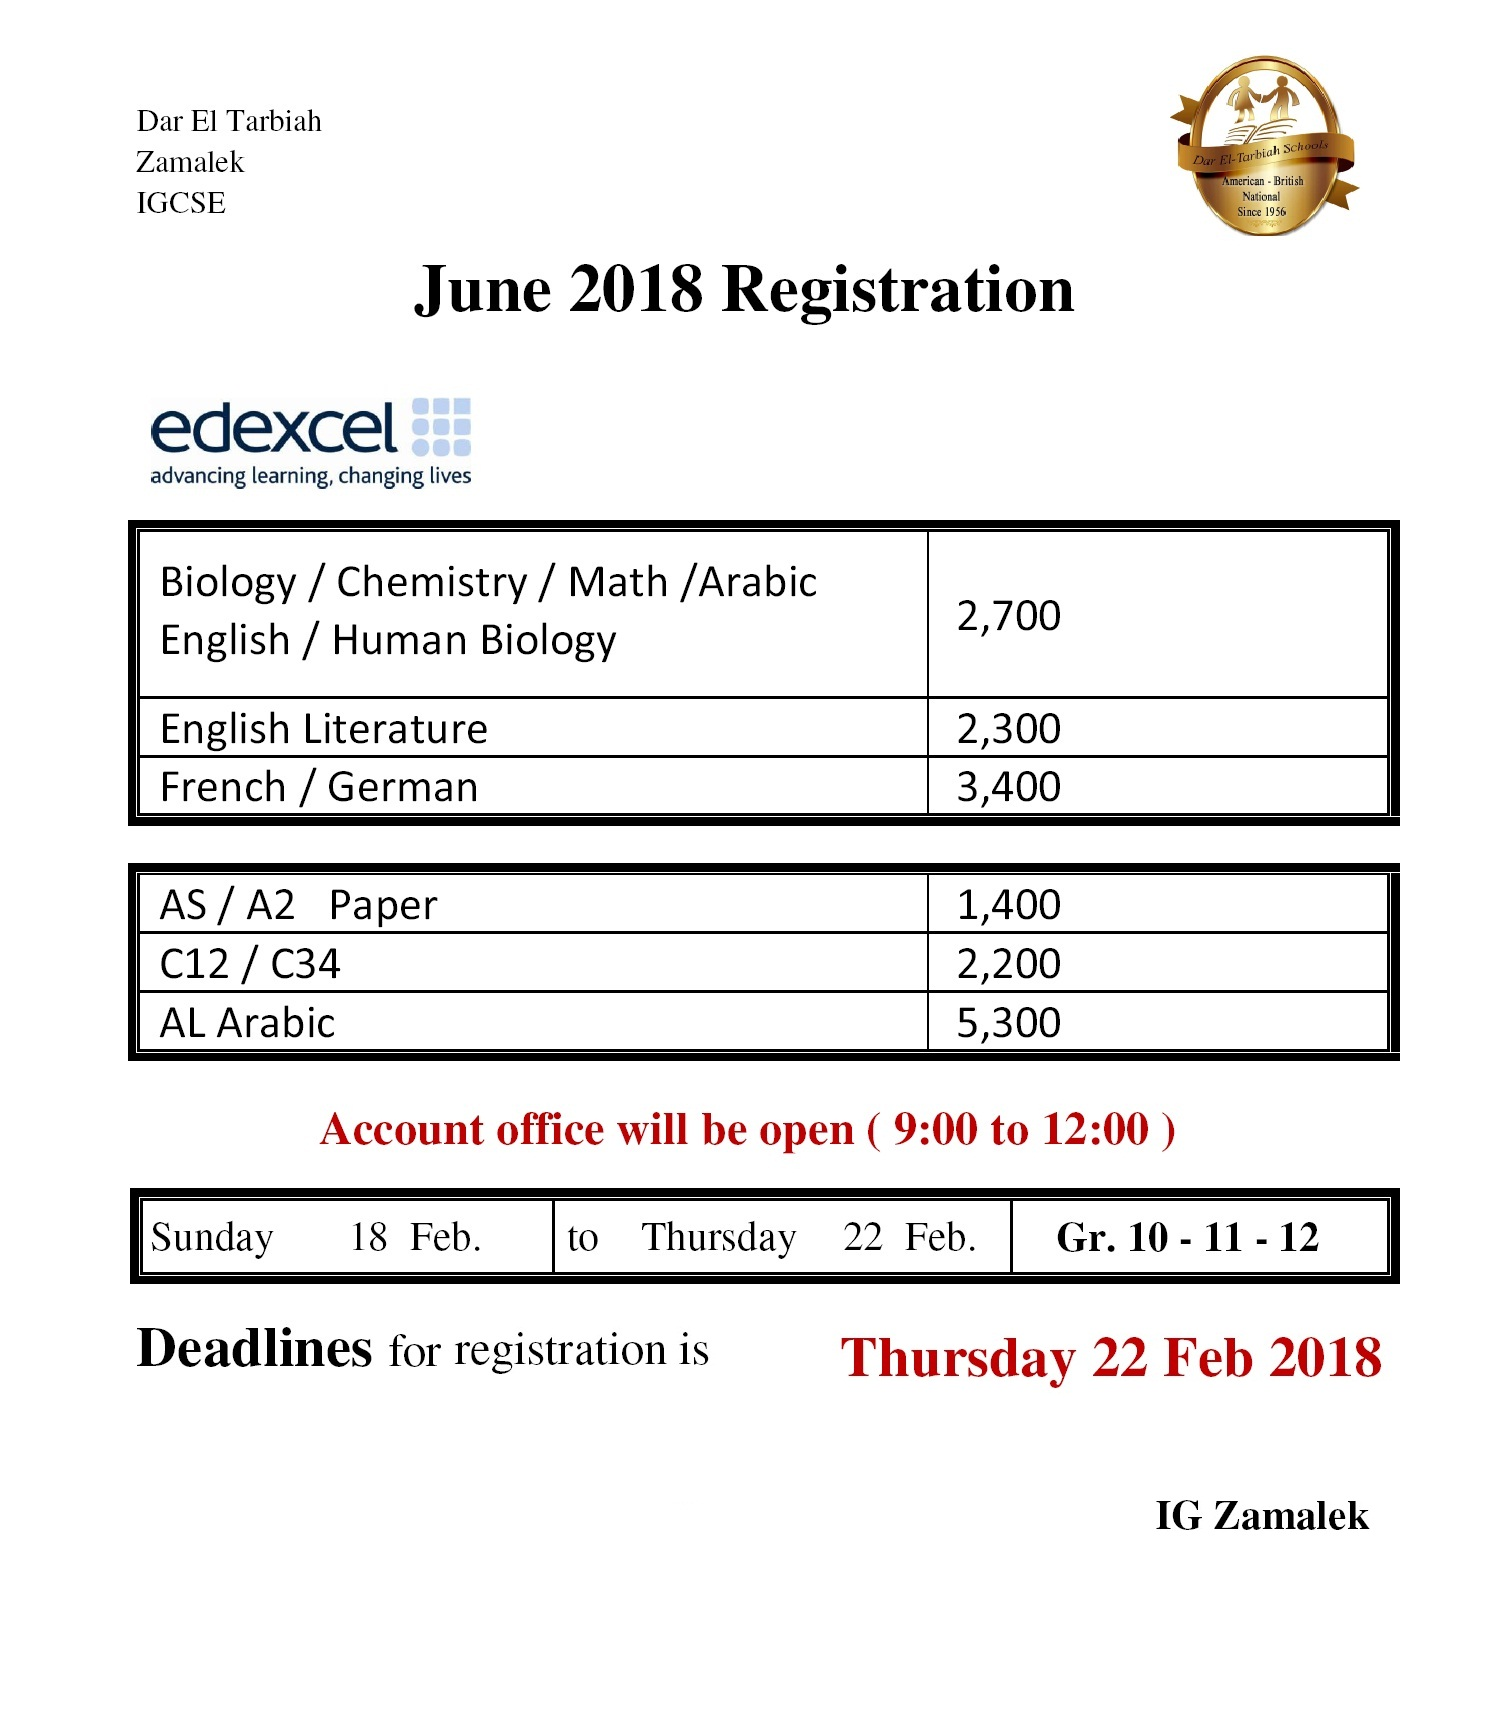 IG Zamalek : Edexcel June 2018 Fees